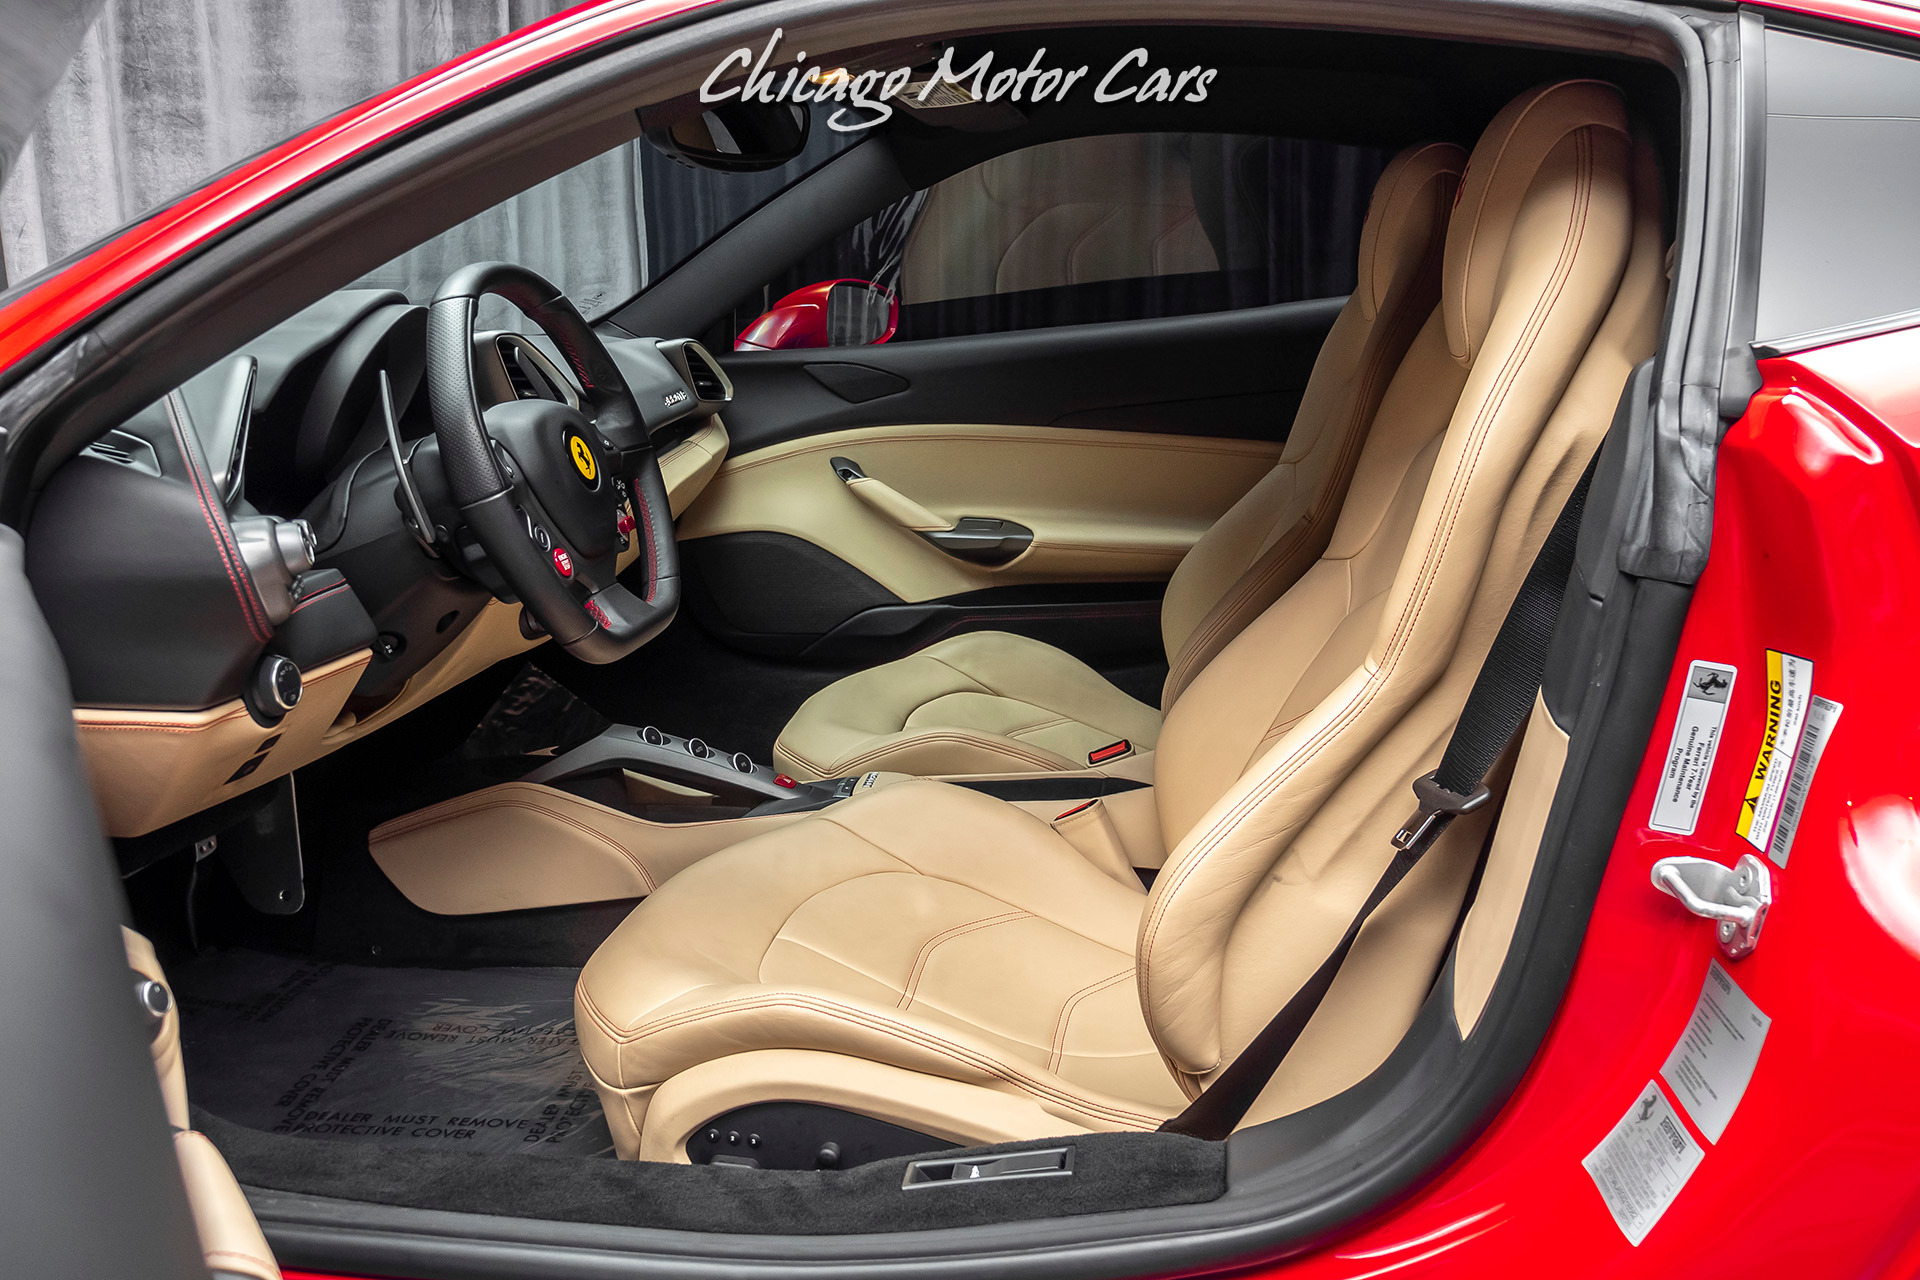 Used-2016-Ferrari-488-GTB-Coupe---ONLY-2K-MILES-BEAUTIFUL-COLOR-COMBO-FULL-ELECTRIC-SEATS